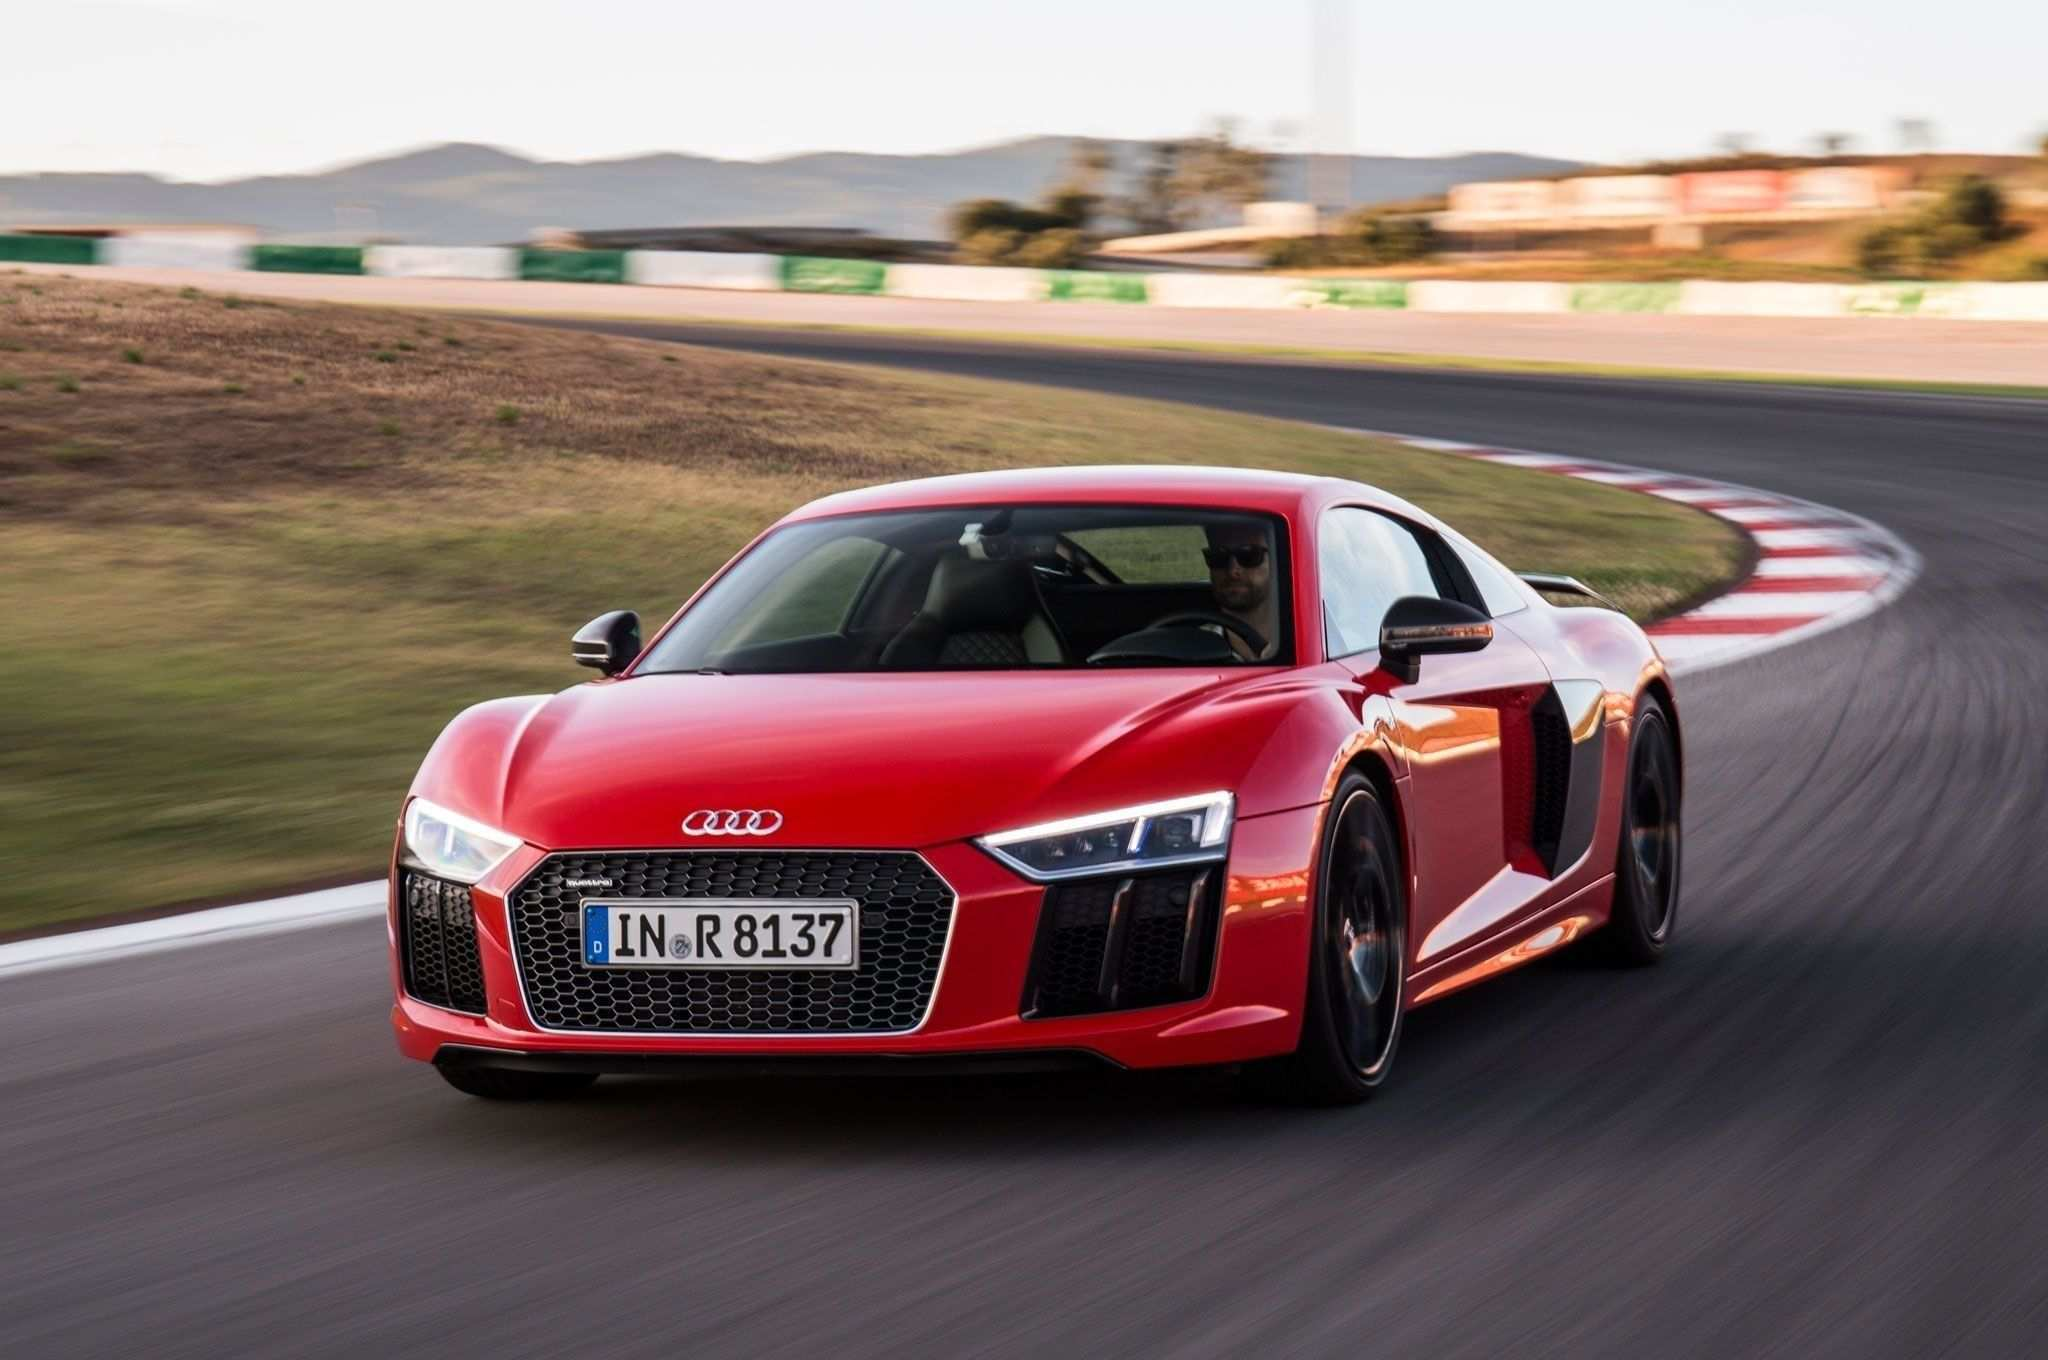 57 Great 2020 Audi R8 LMXs Spy Shoot for 2020 Audi R8 LMXs